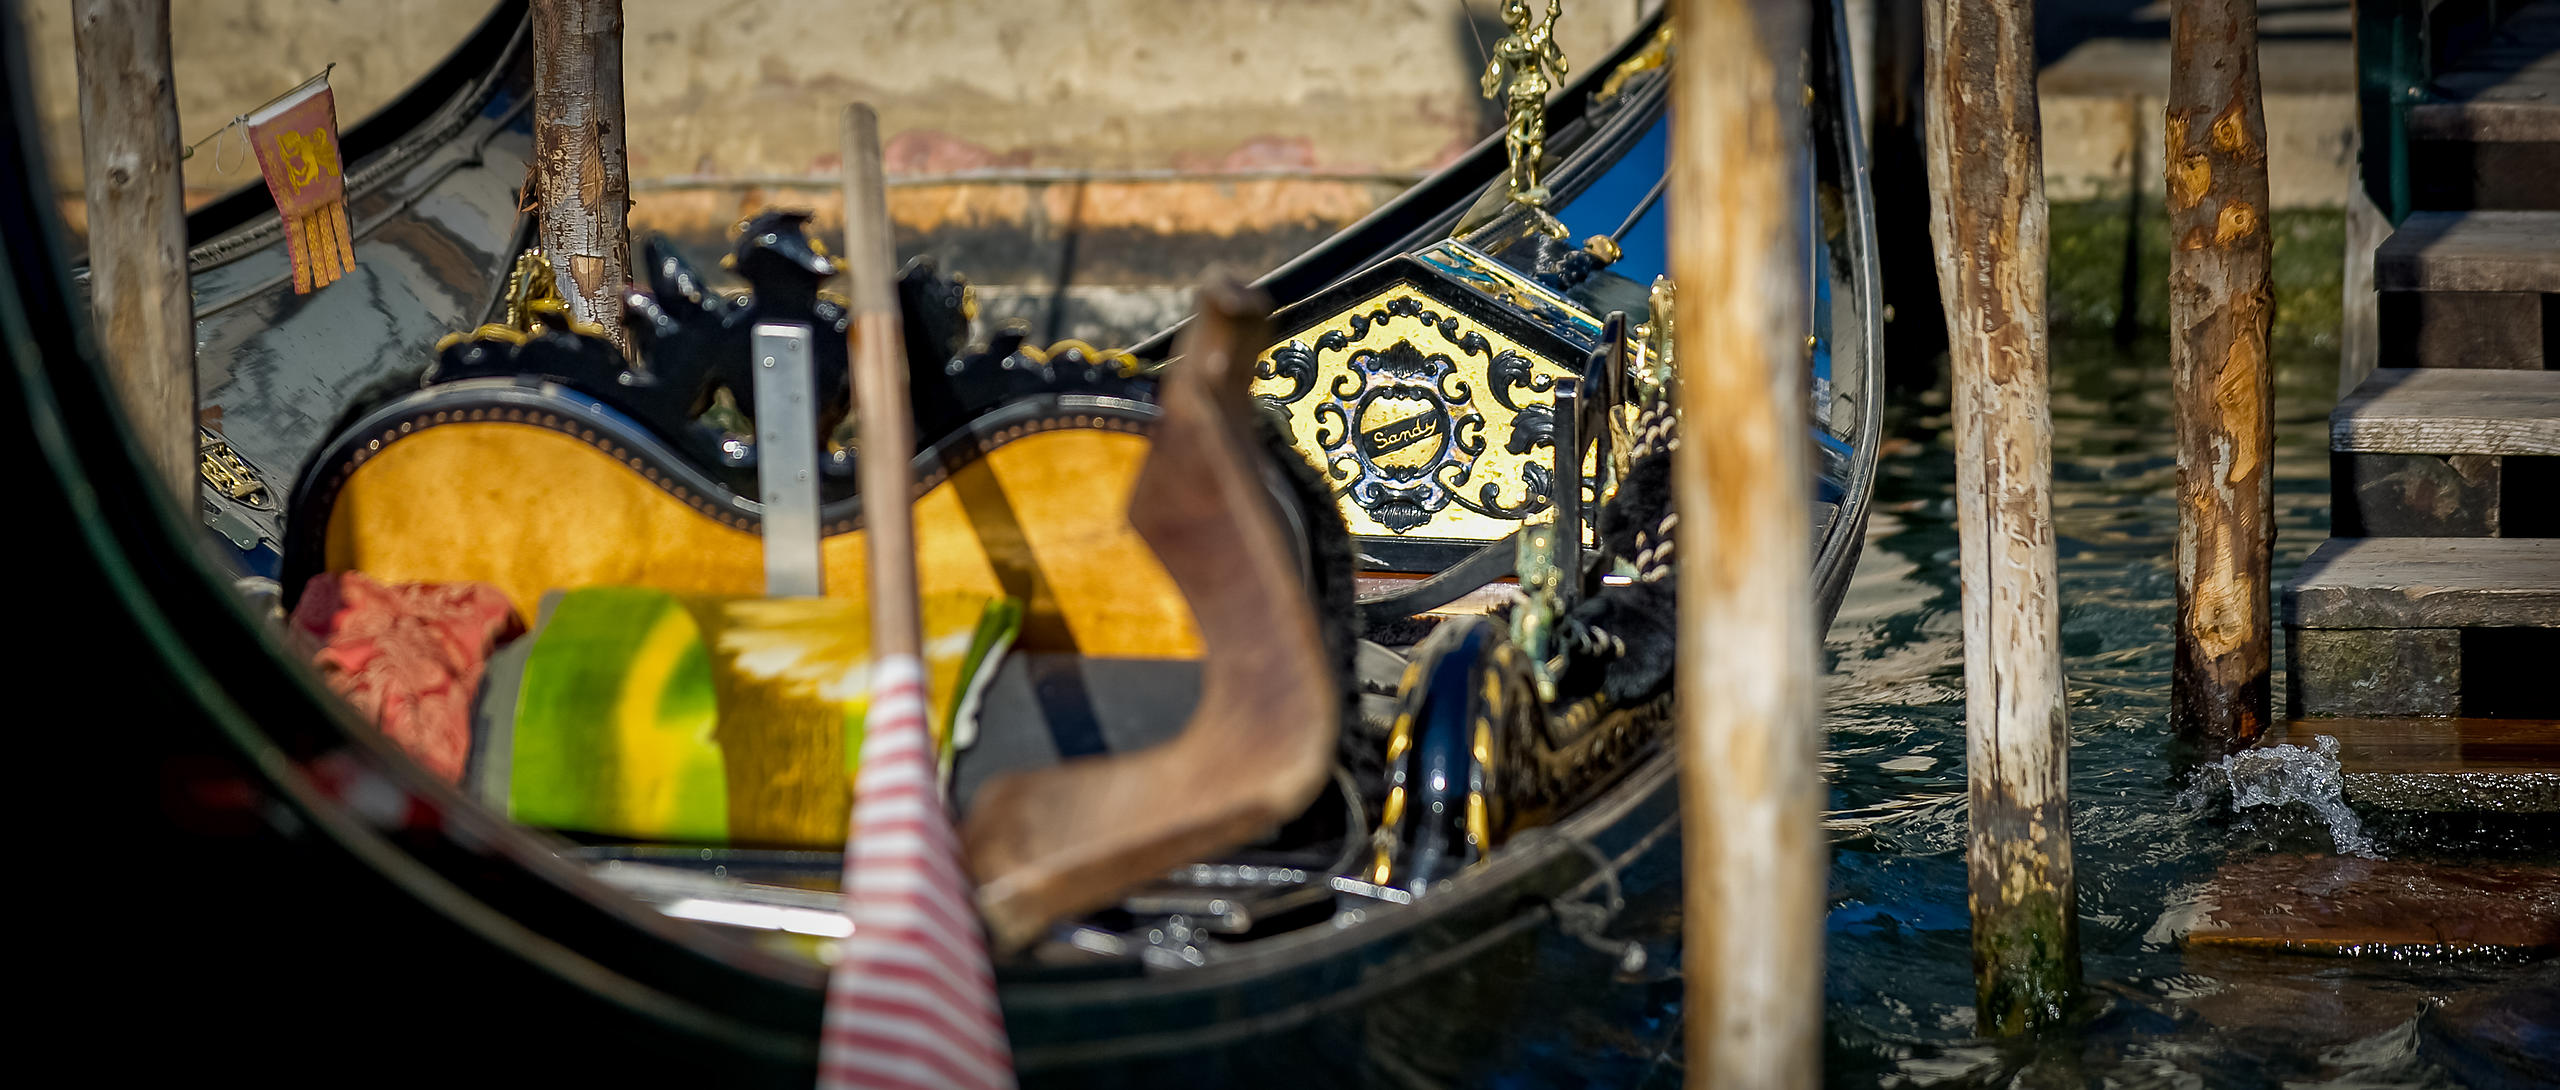 Close-up of a Gondola Moored on the Grand Canal with Oar and Details